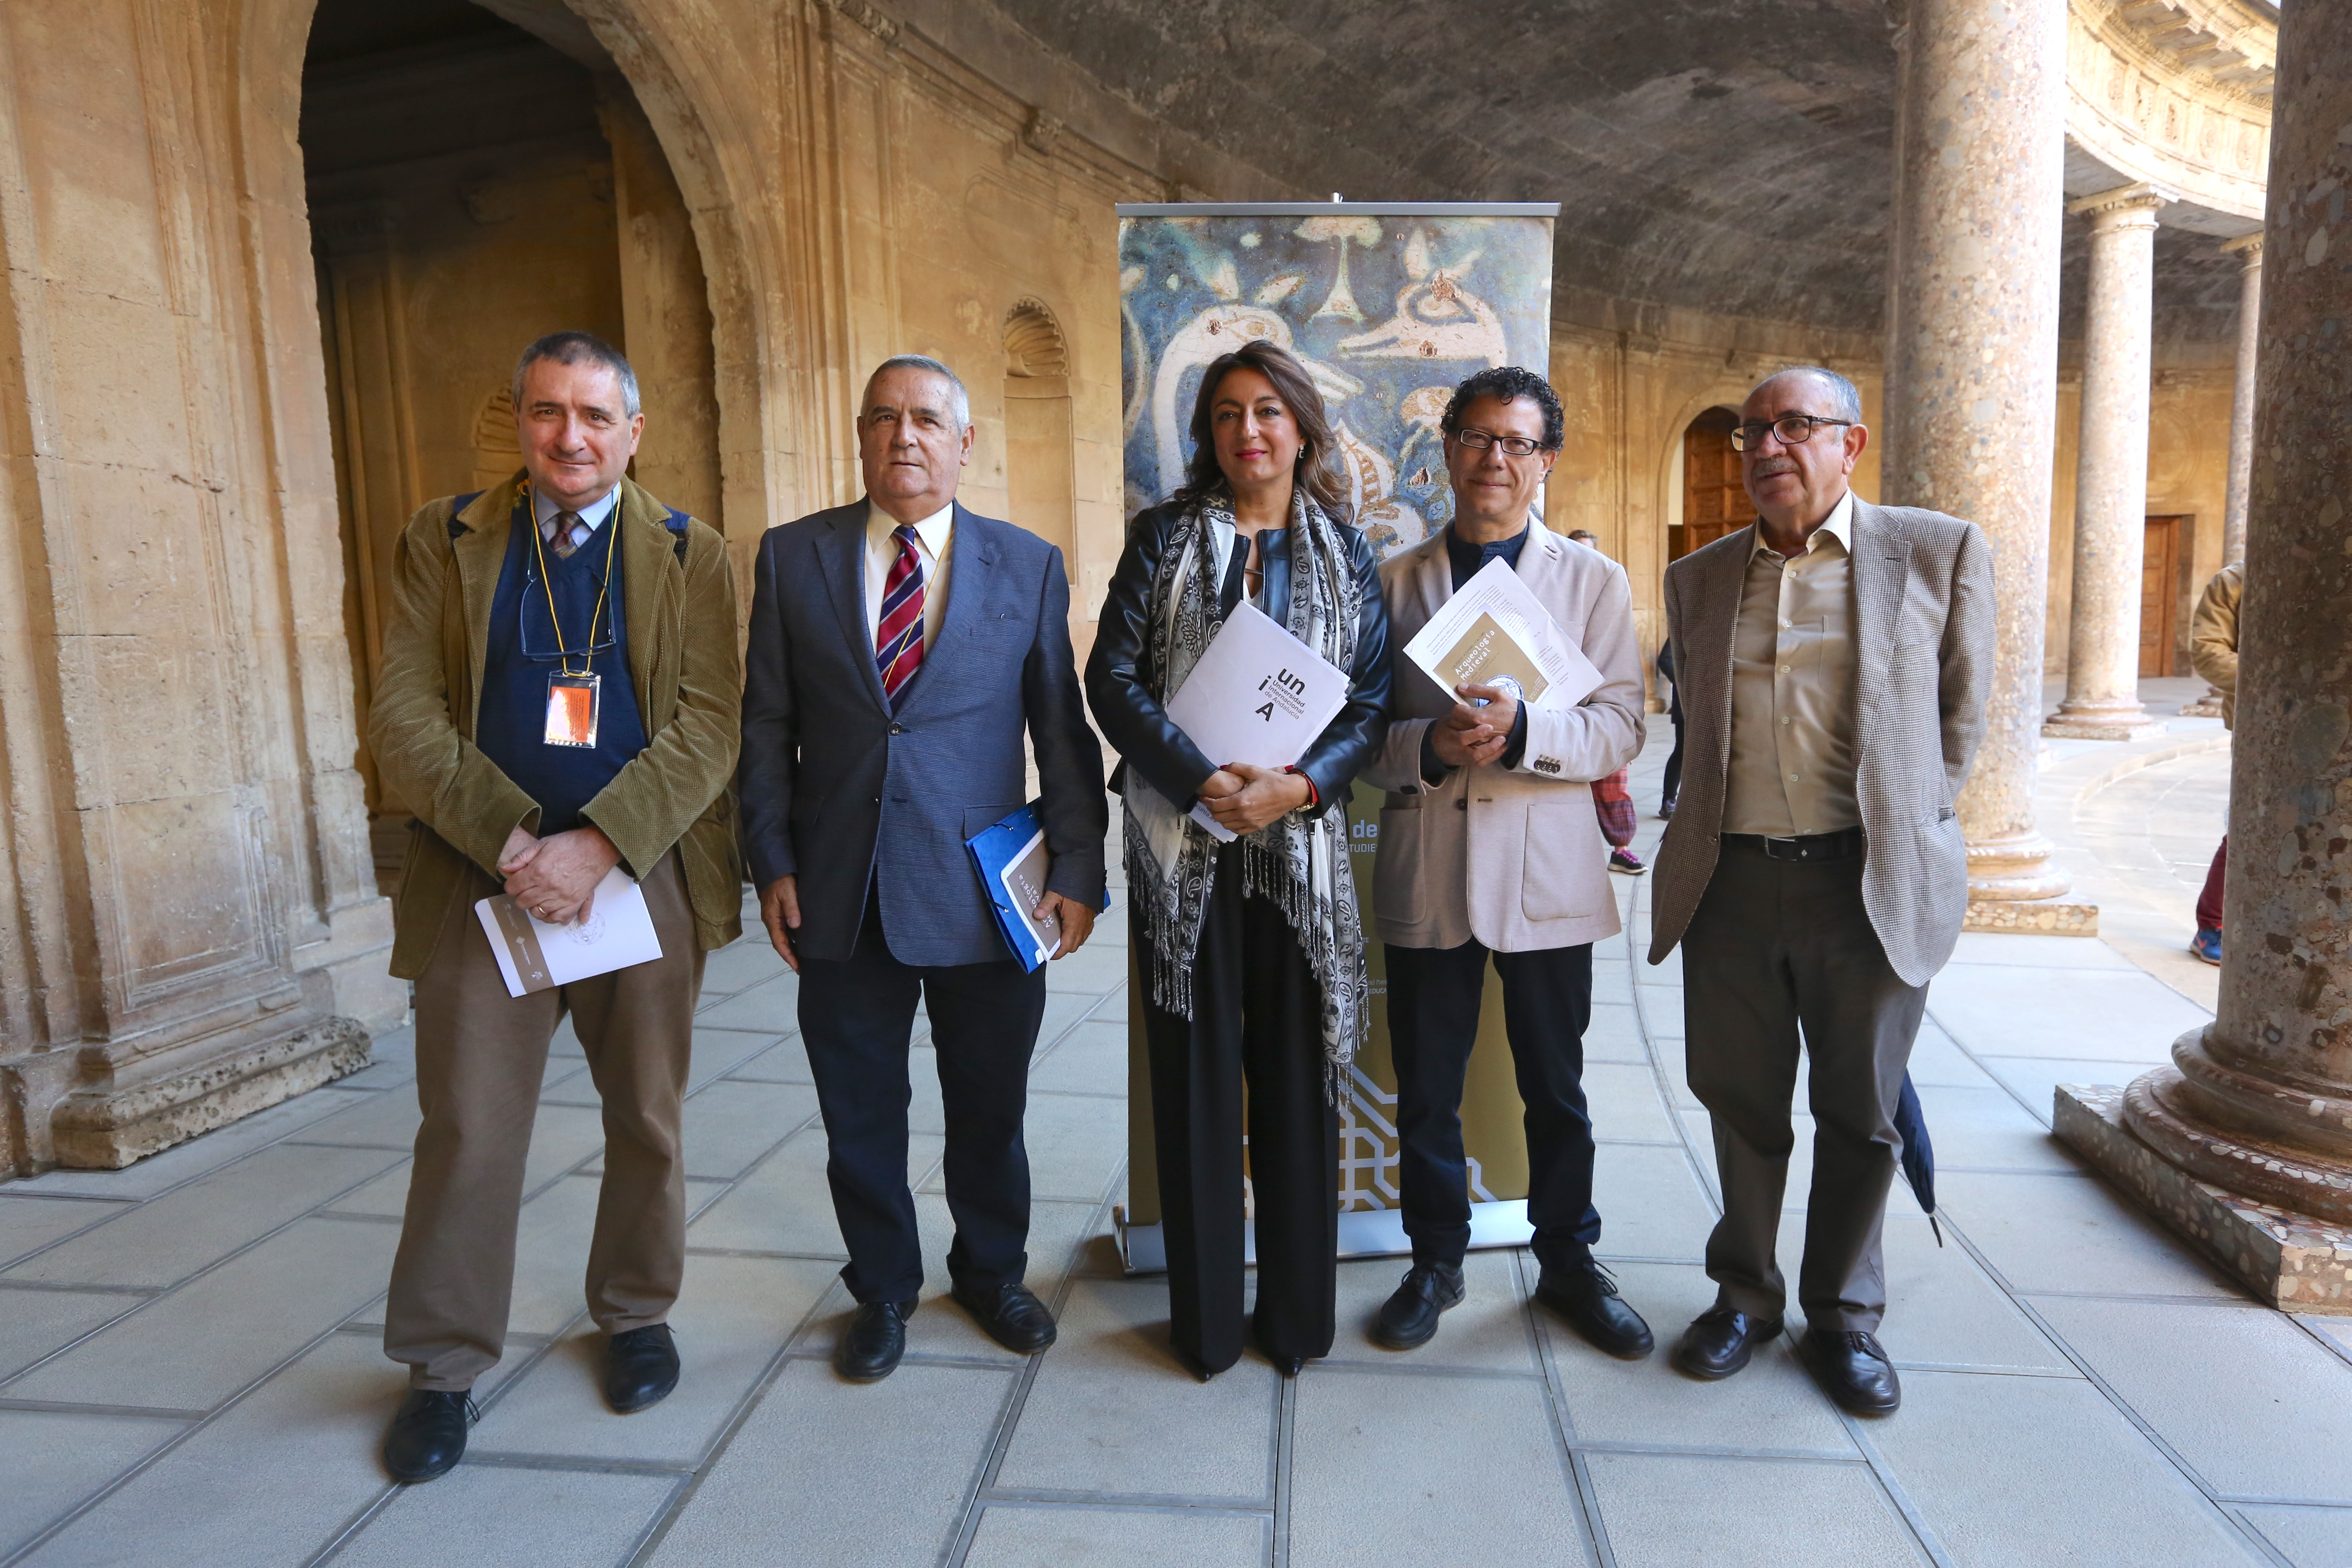 International experts gather at the Alhambra to debate about mediaeval archaeology